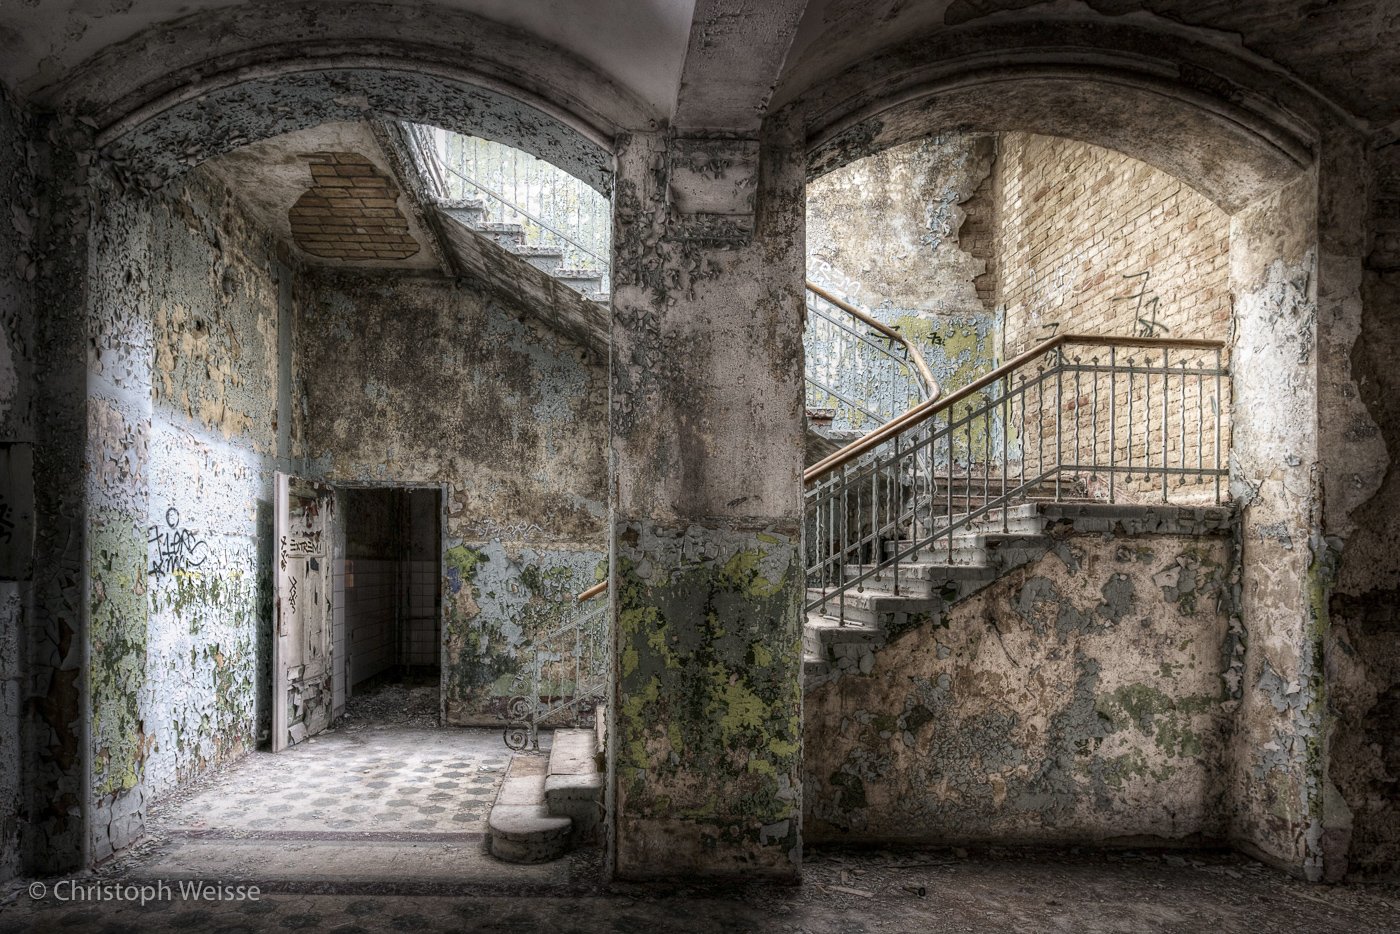 LostPlaces-www.christophweisse.com-3.jpg